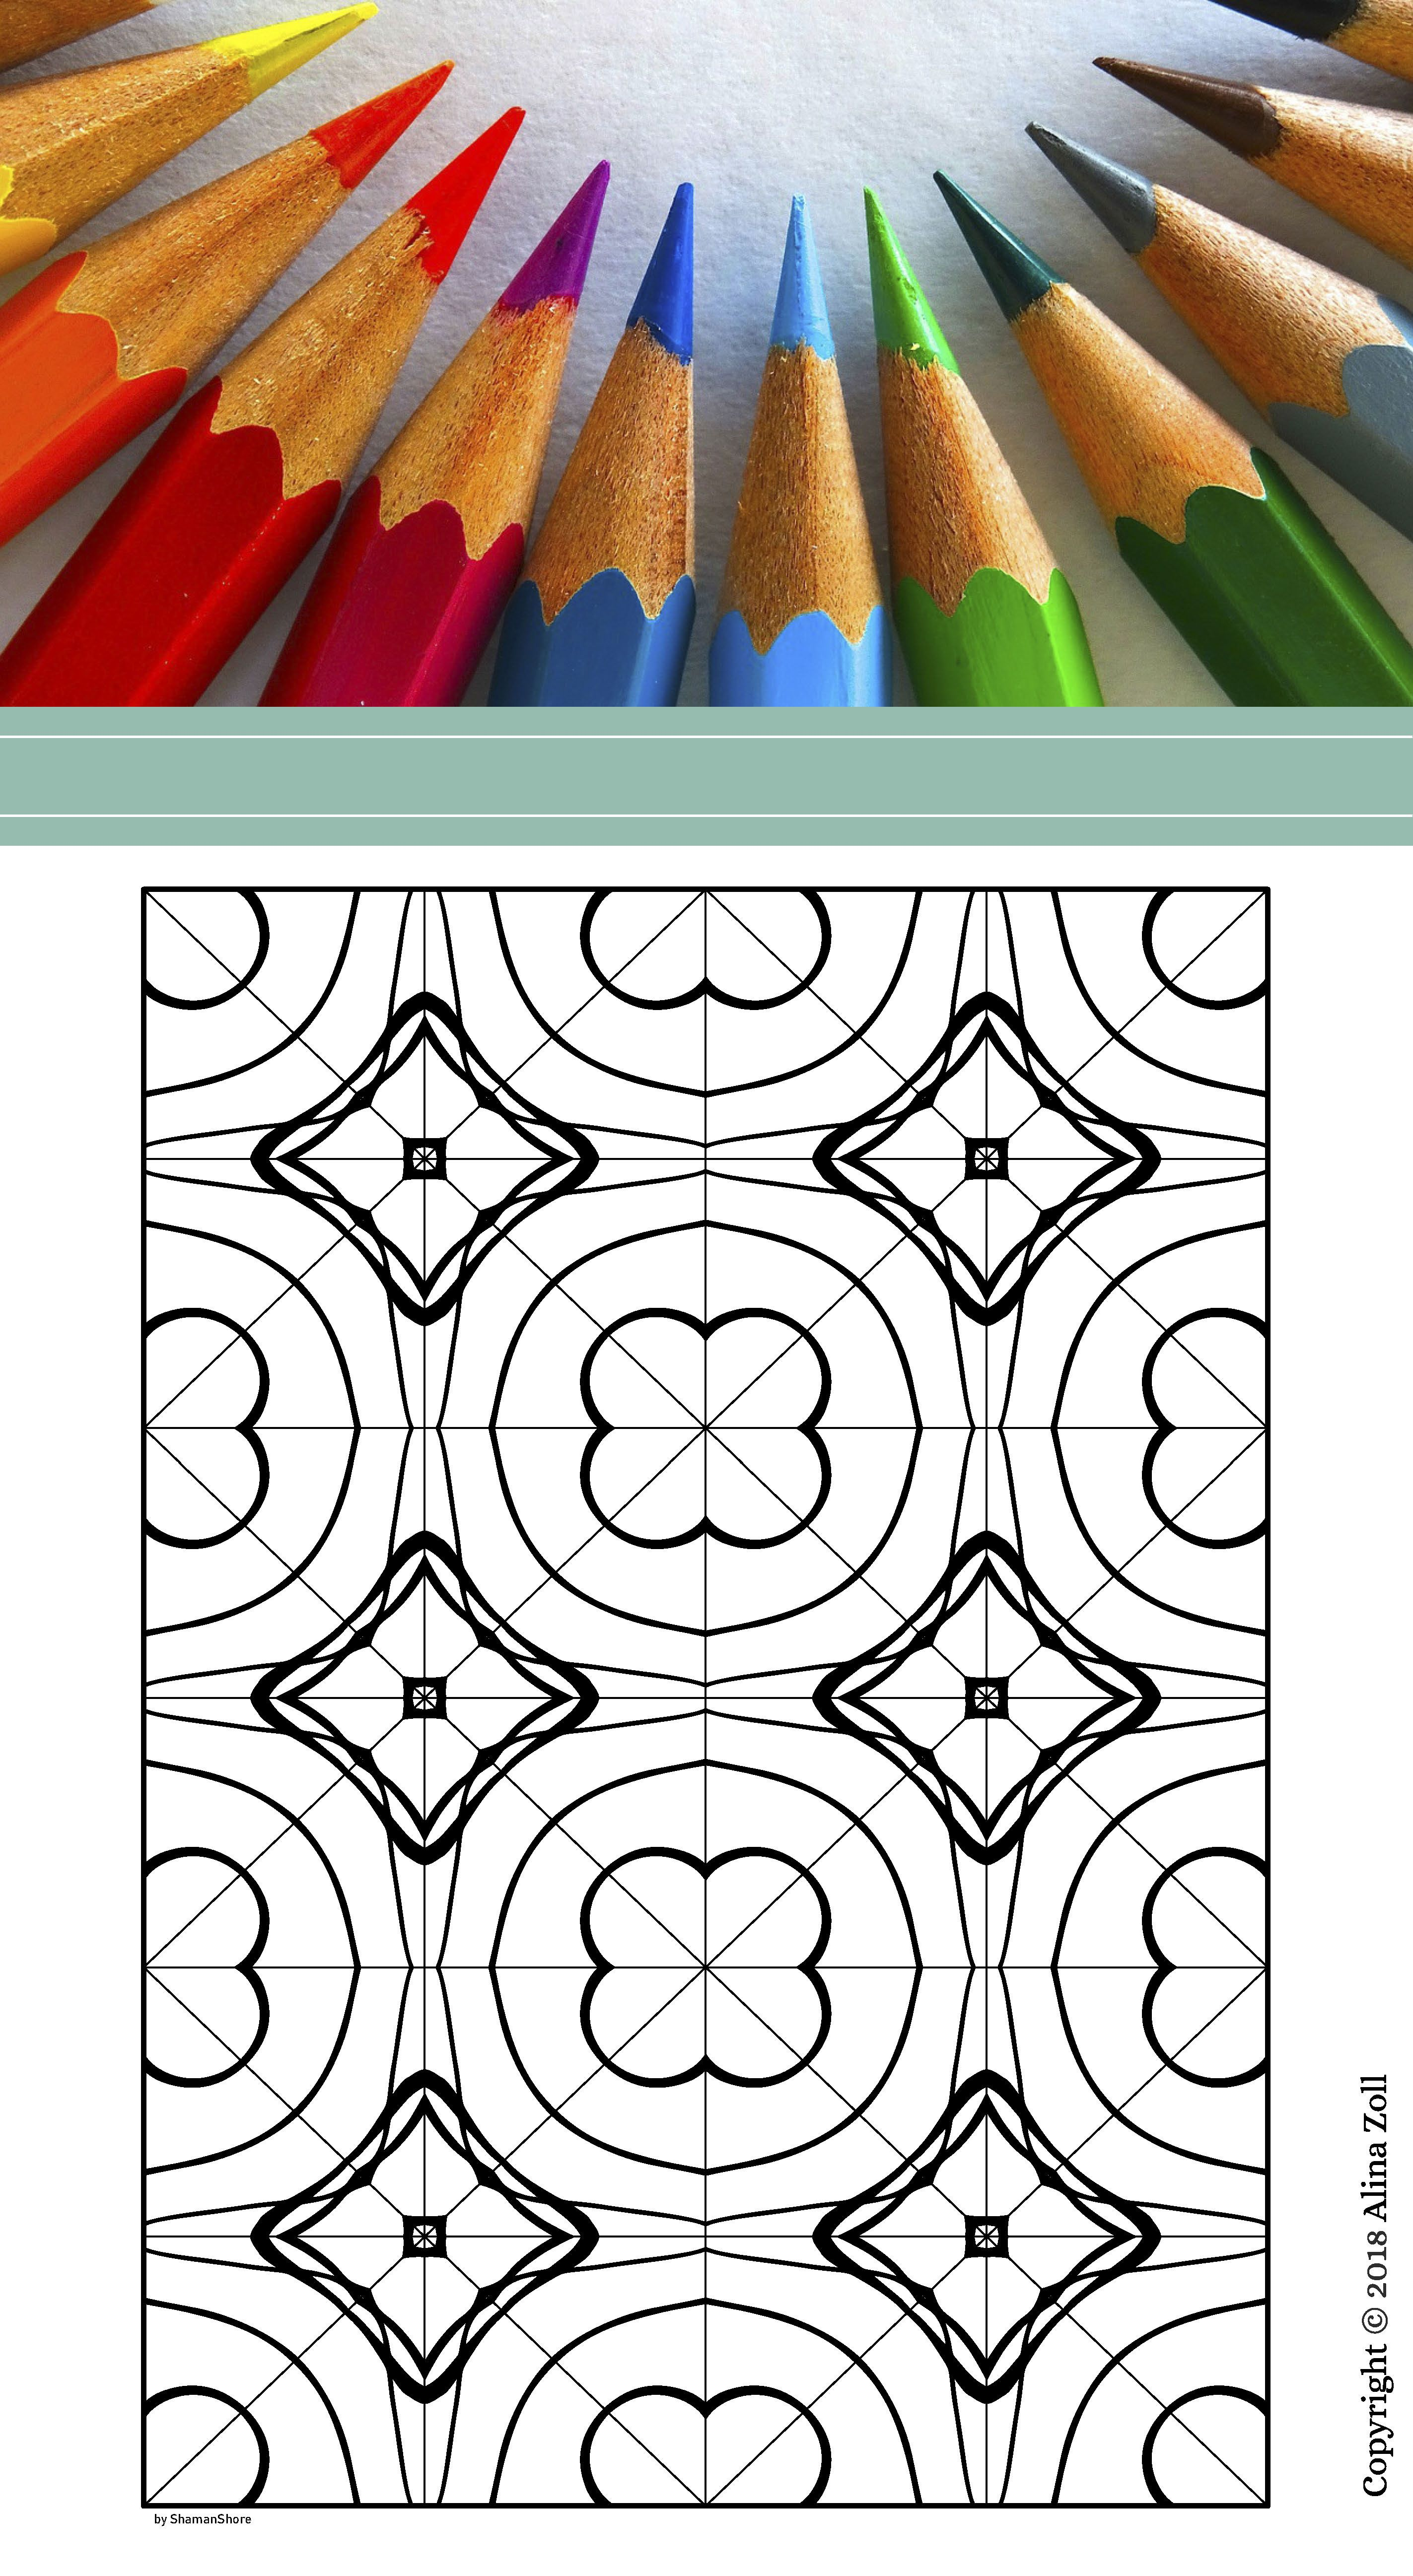 Paperback Abstract Kaleidoscope Adult Coloring Book 55